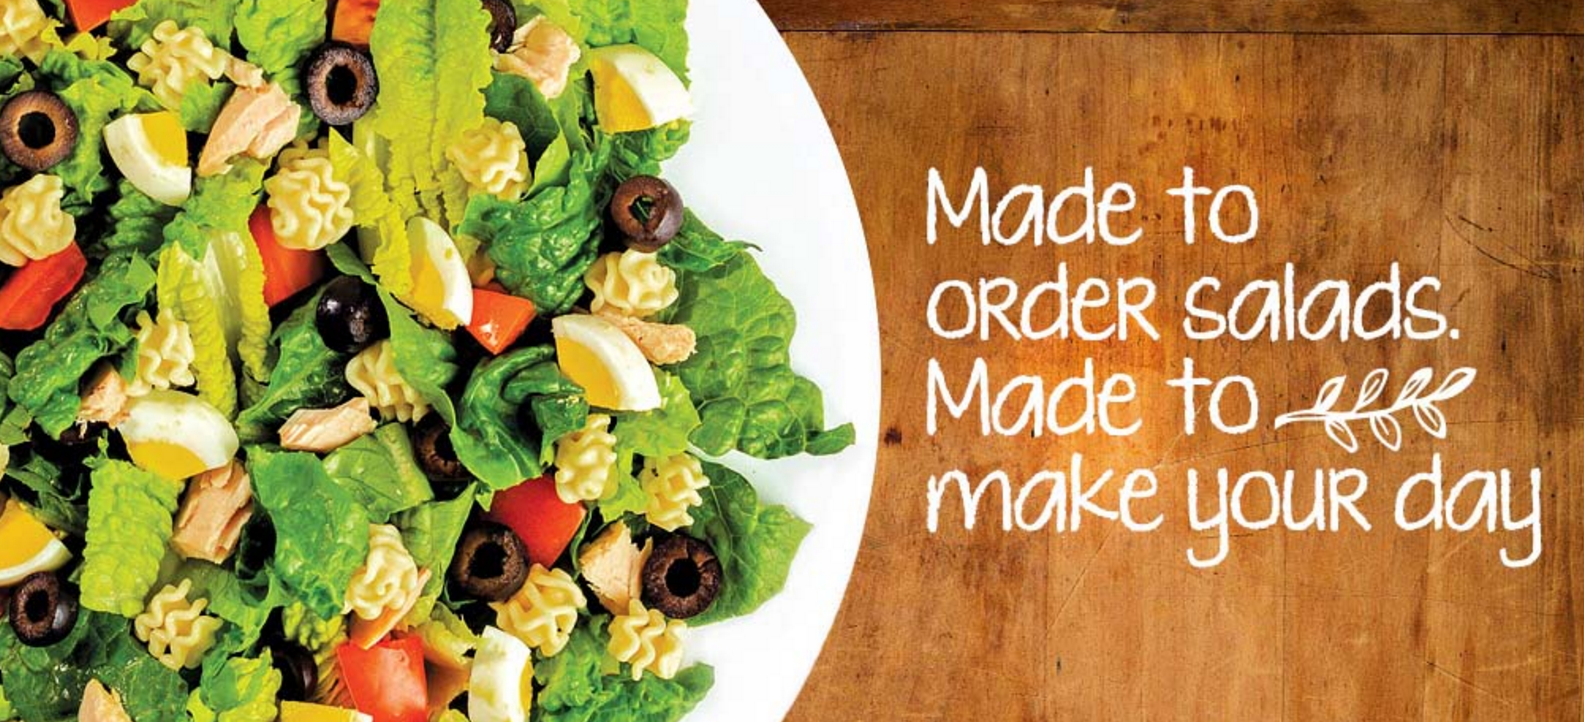 FREE Salad to First 30 Customers at SaladWorks on Friday, September 30, 2016